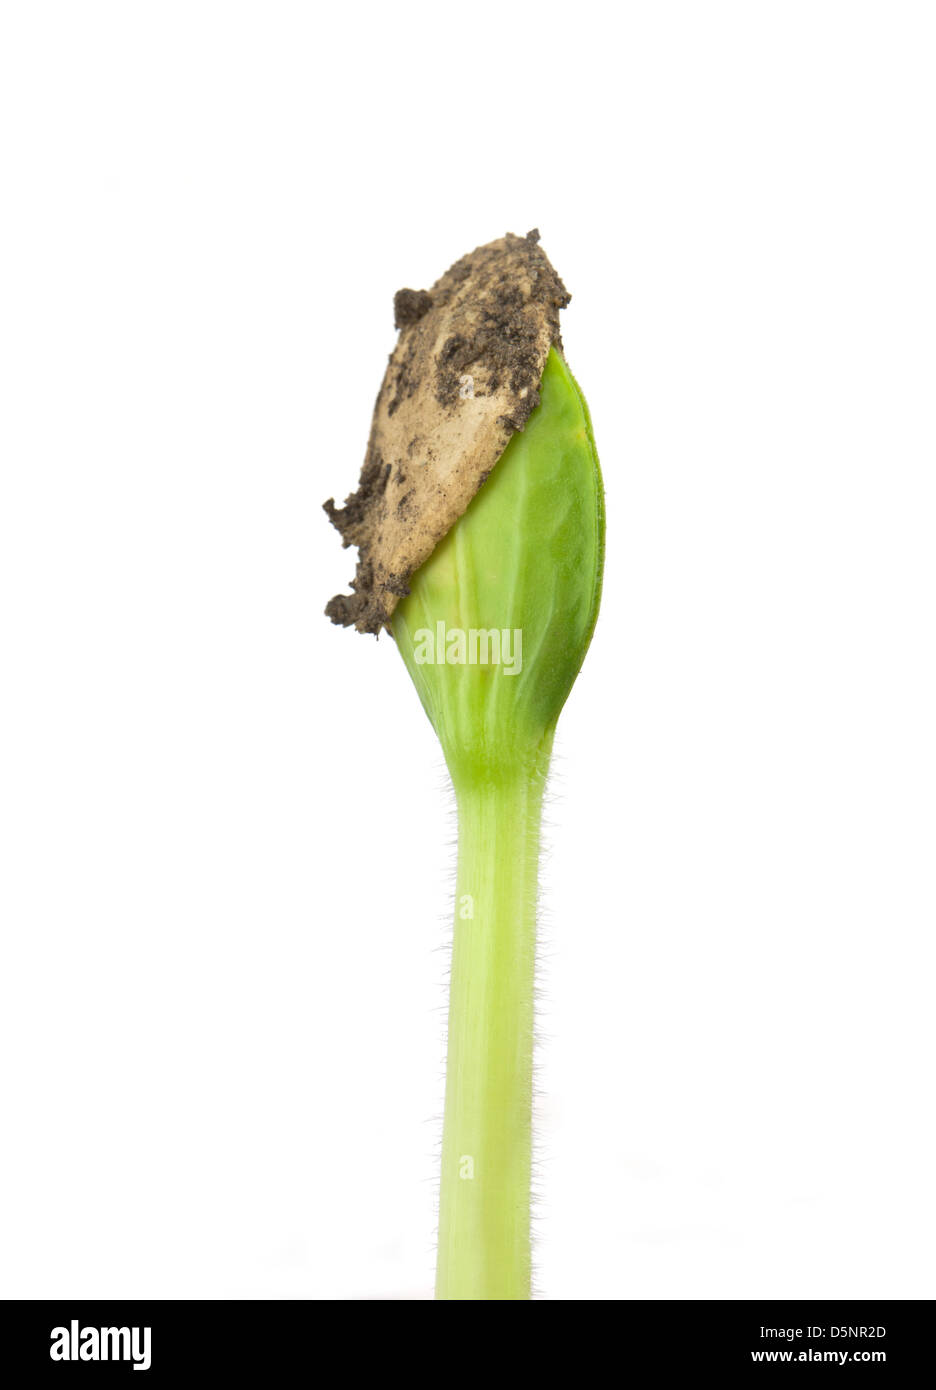 Small pumpkin seedling isolated on white background - Stock Image